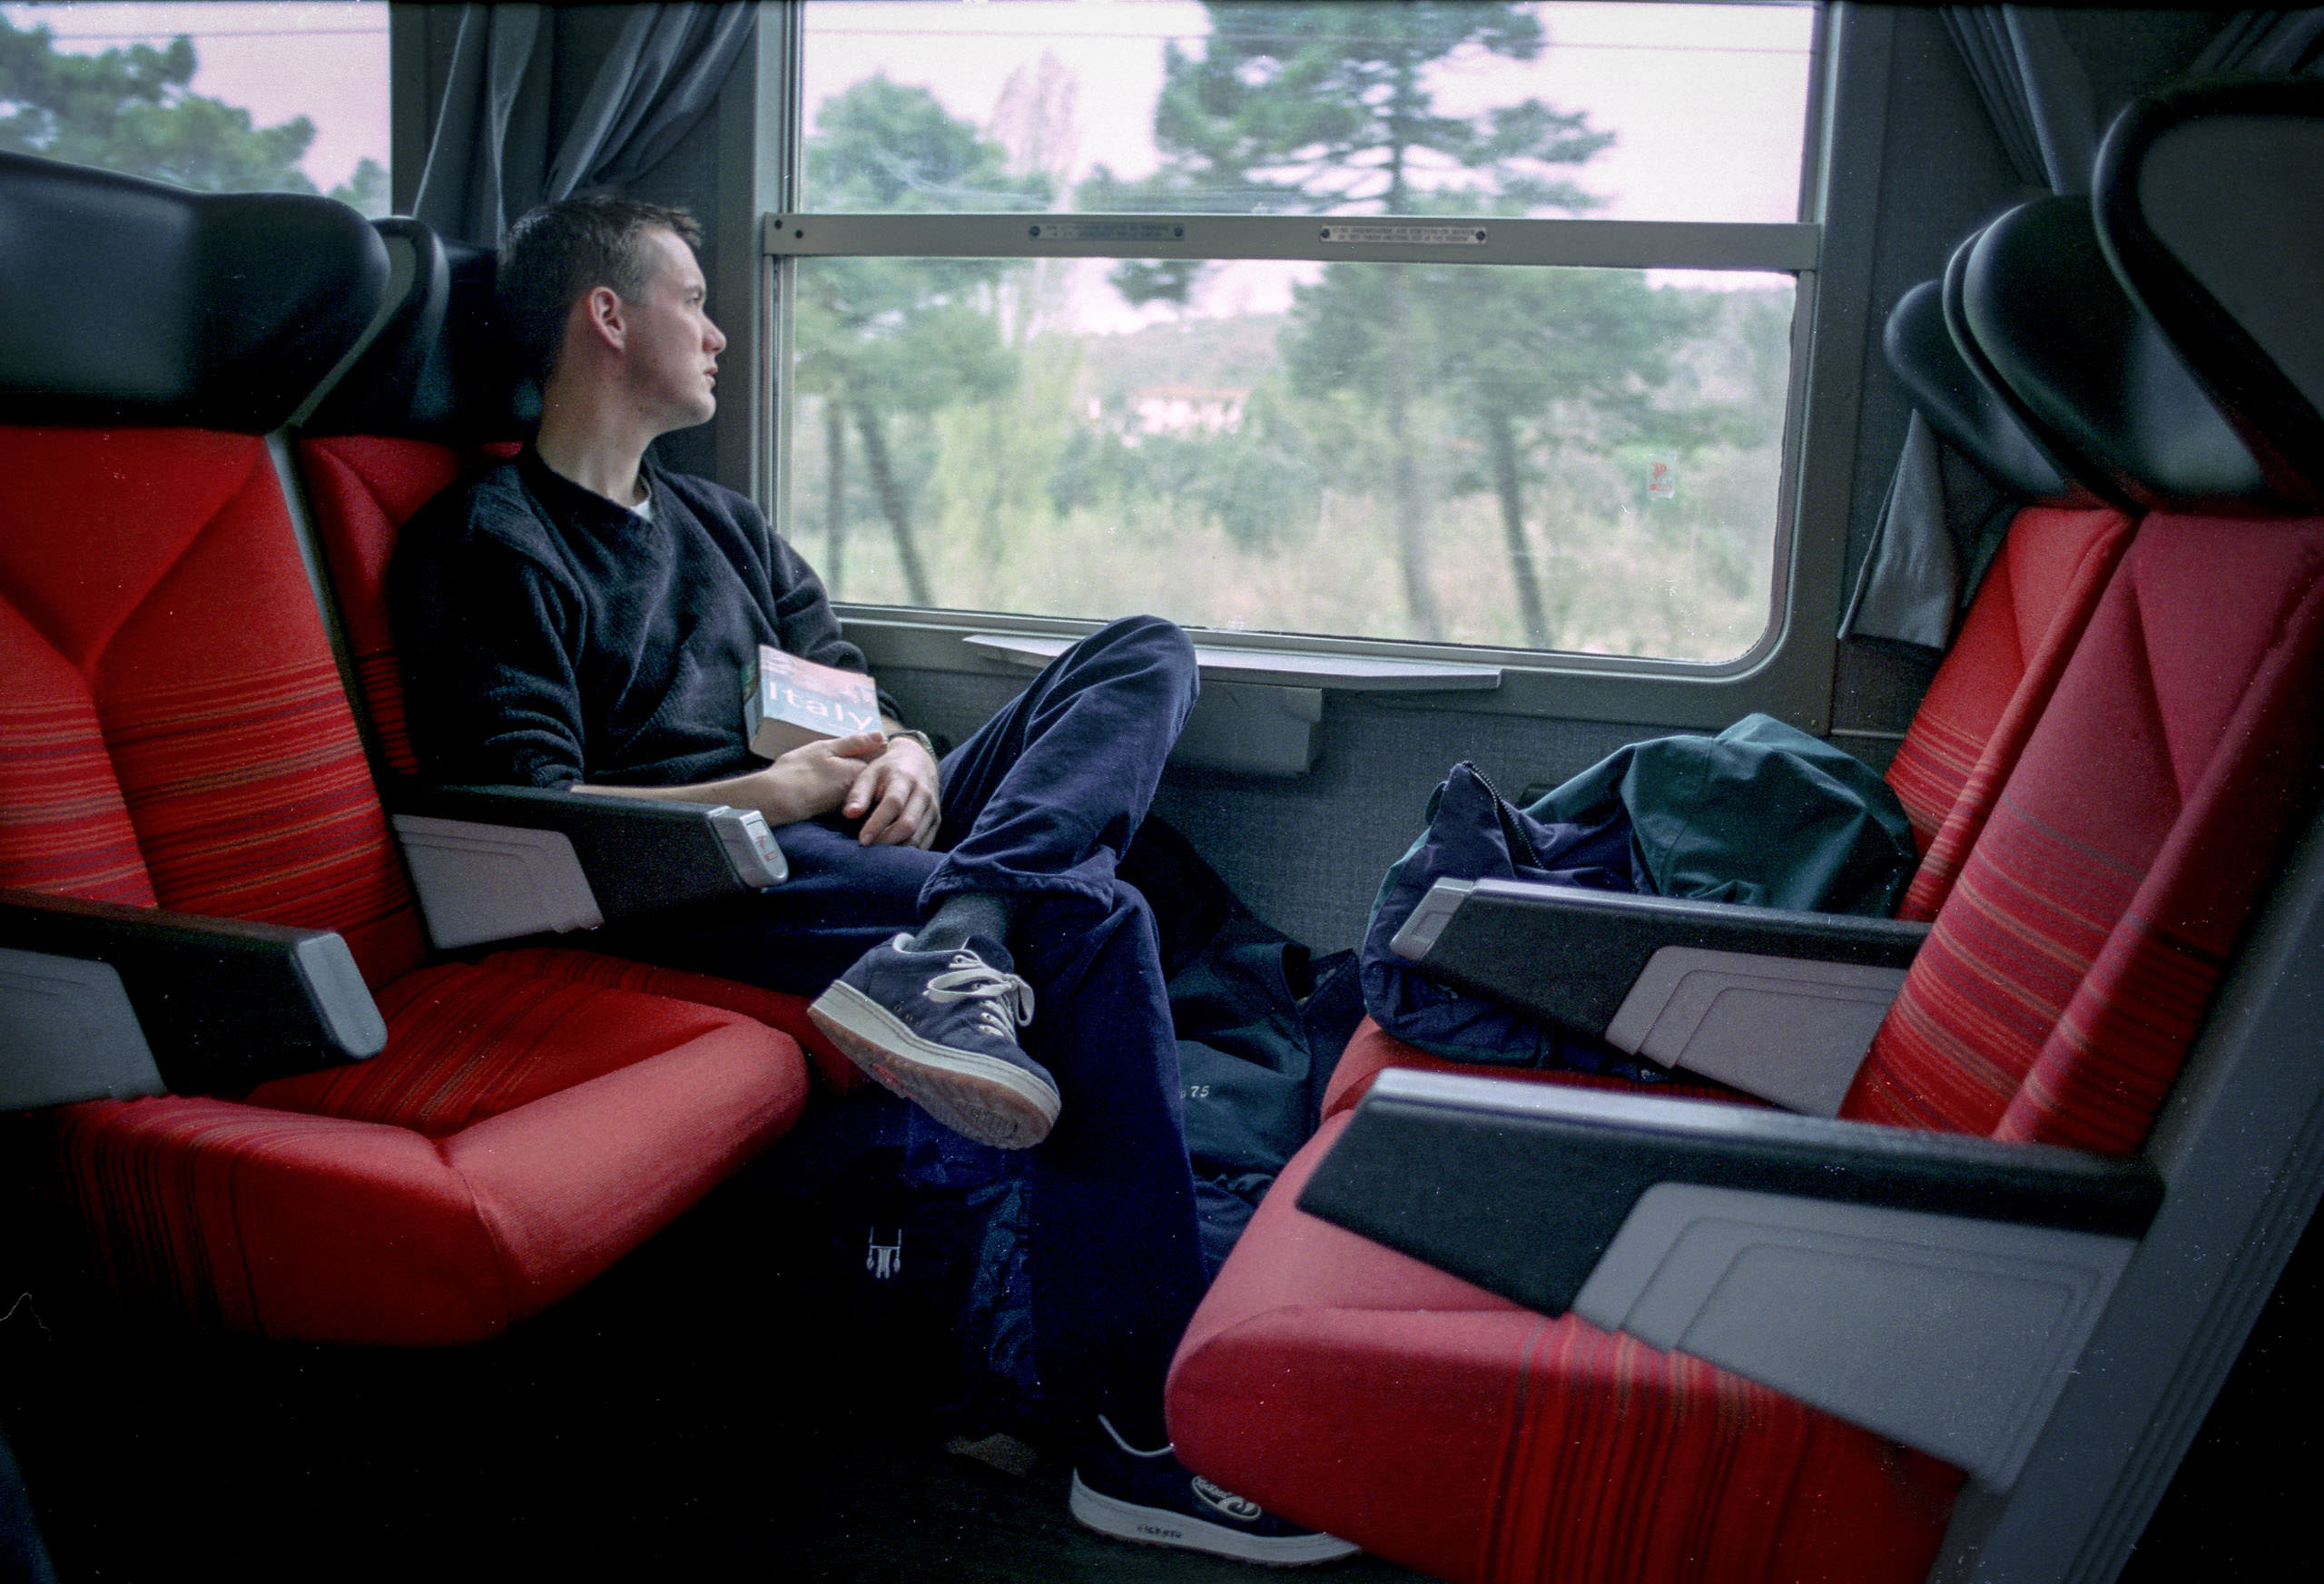 Me, on a train from Pisa to Florence in 1998